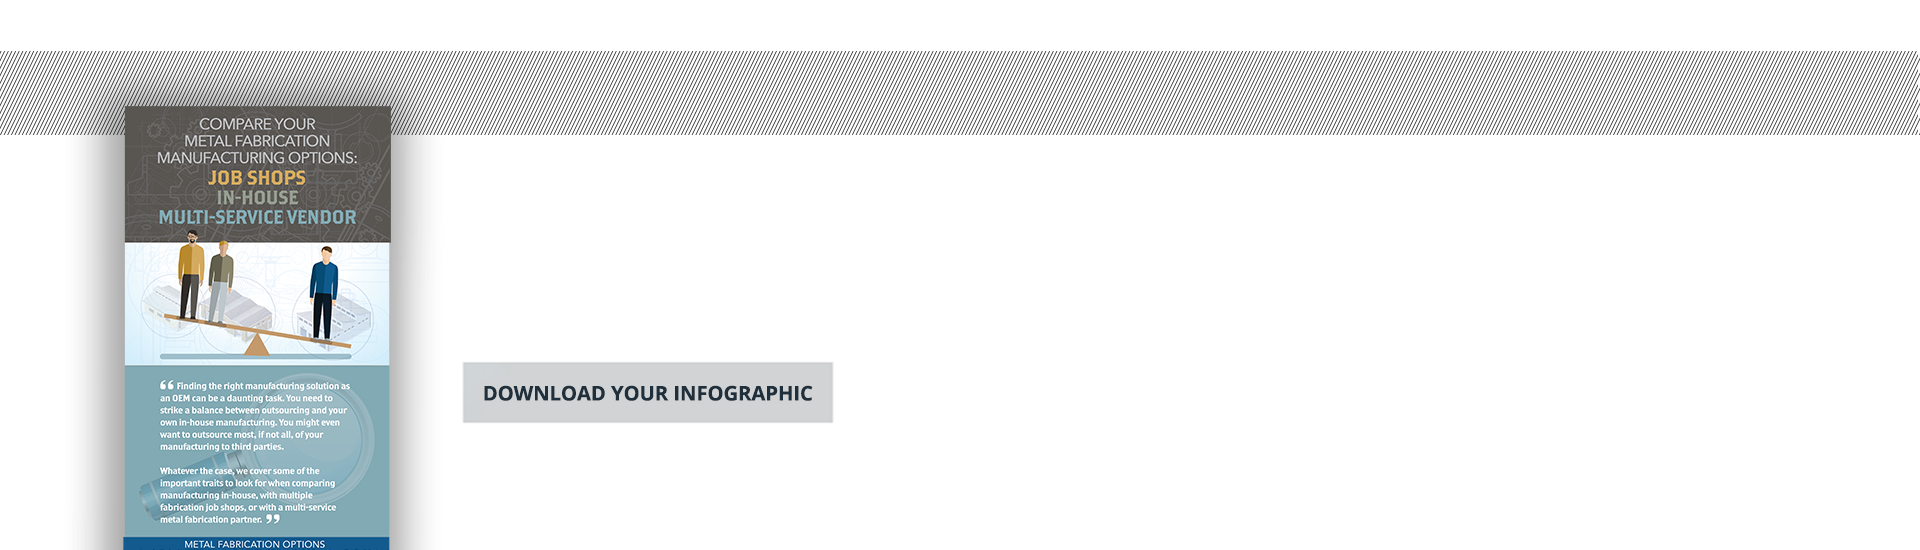 Compare your Metal Fabrication Manufacturing Options